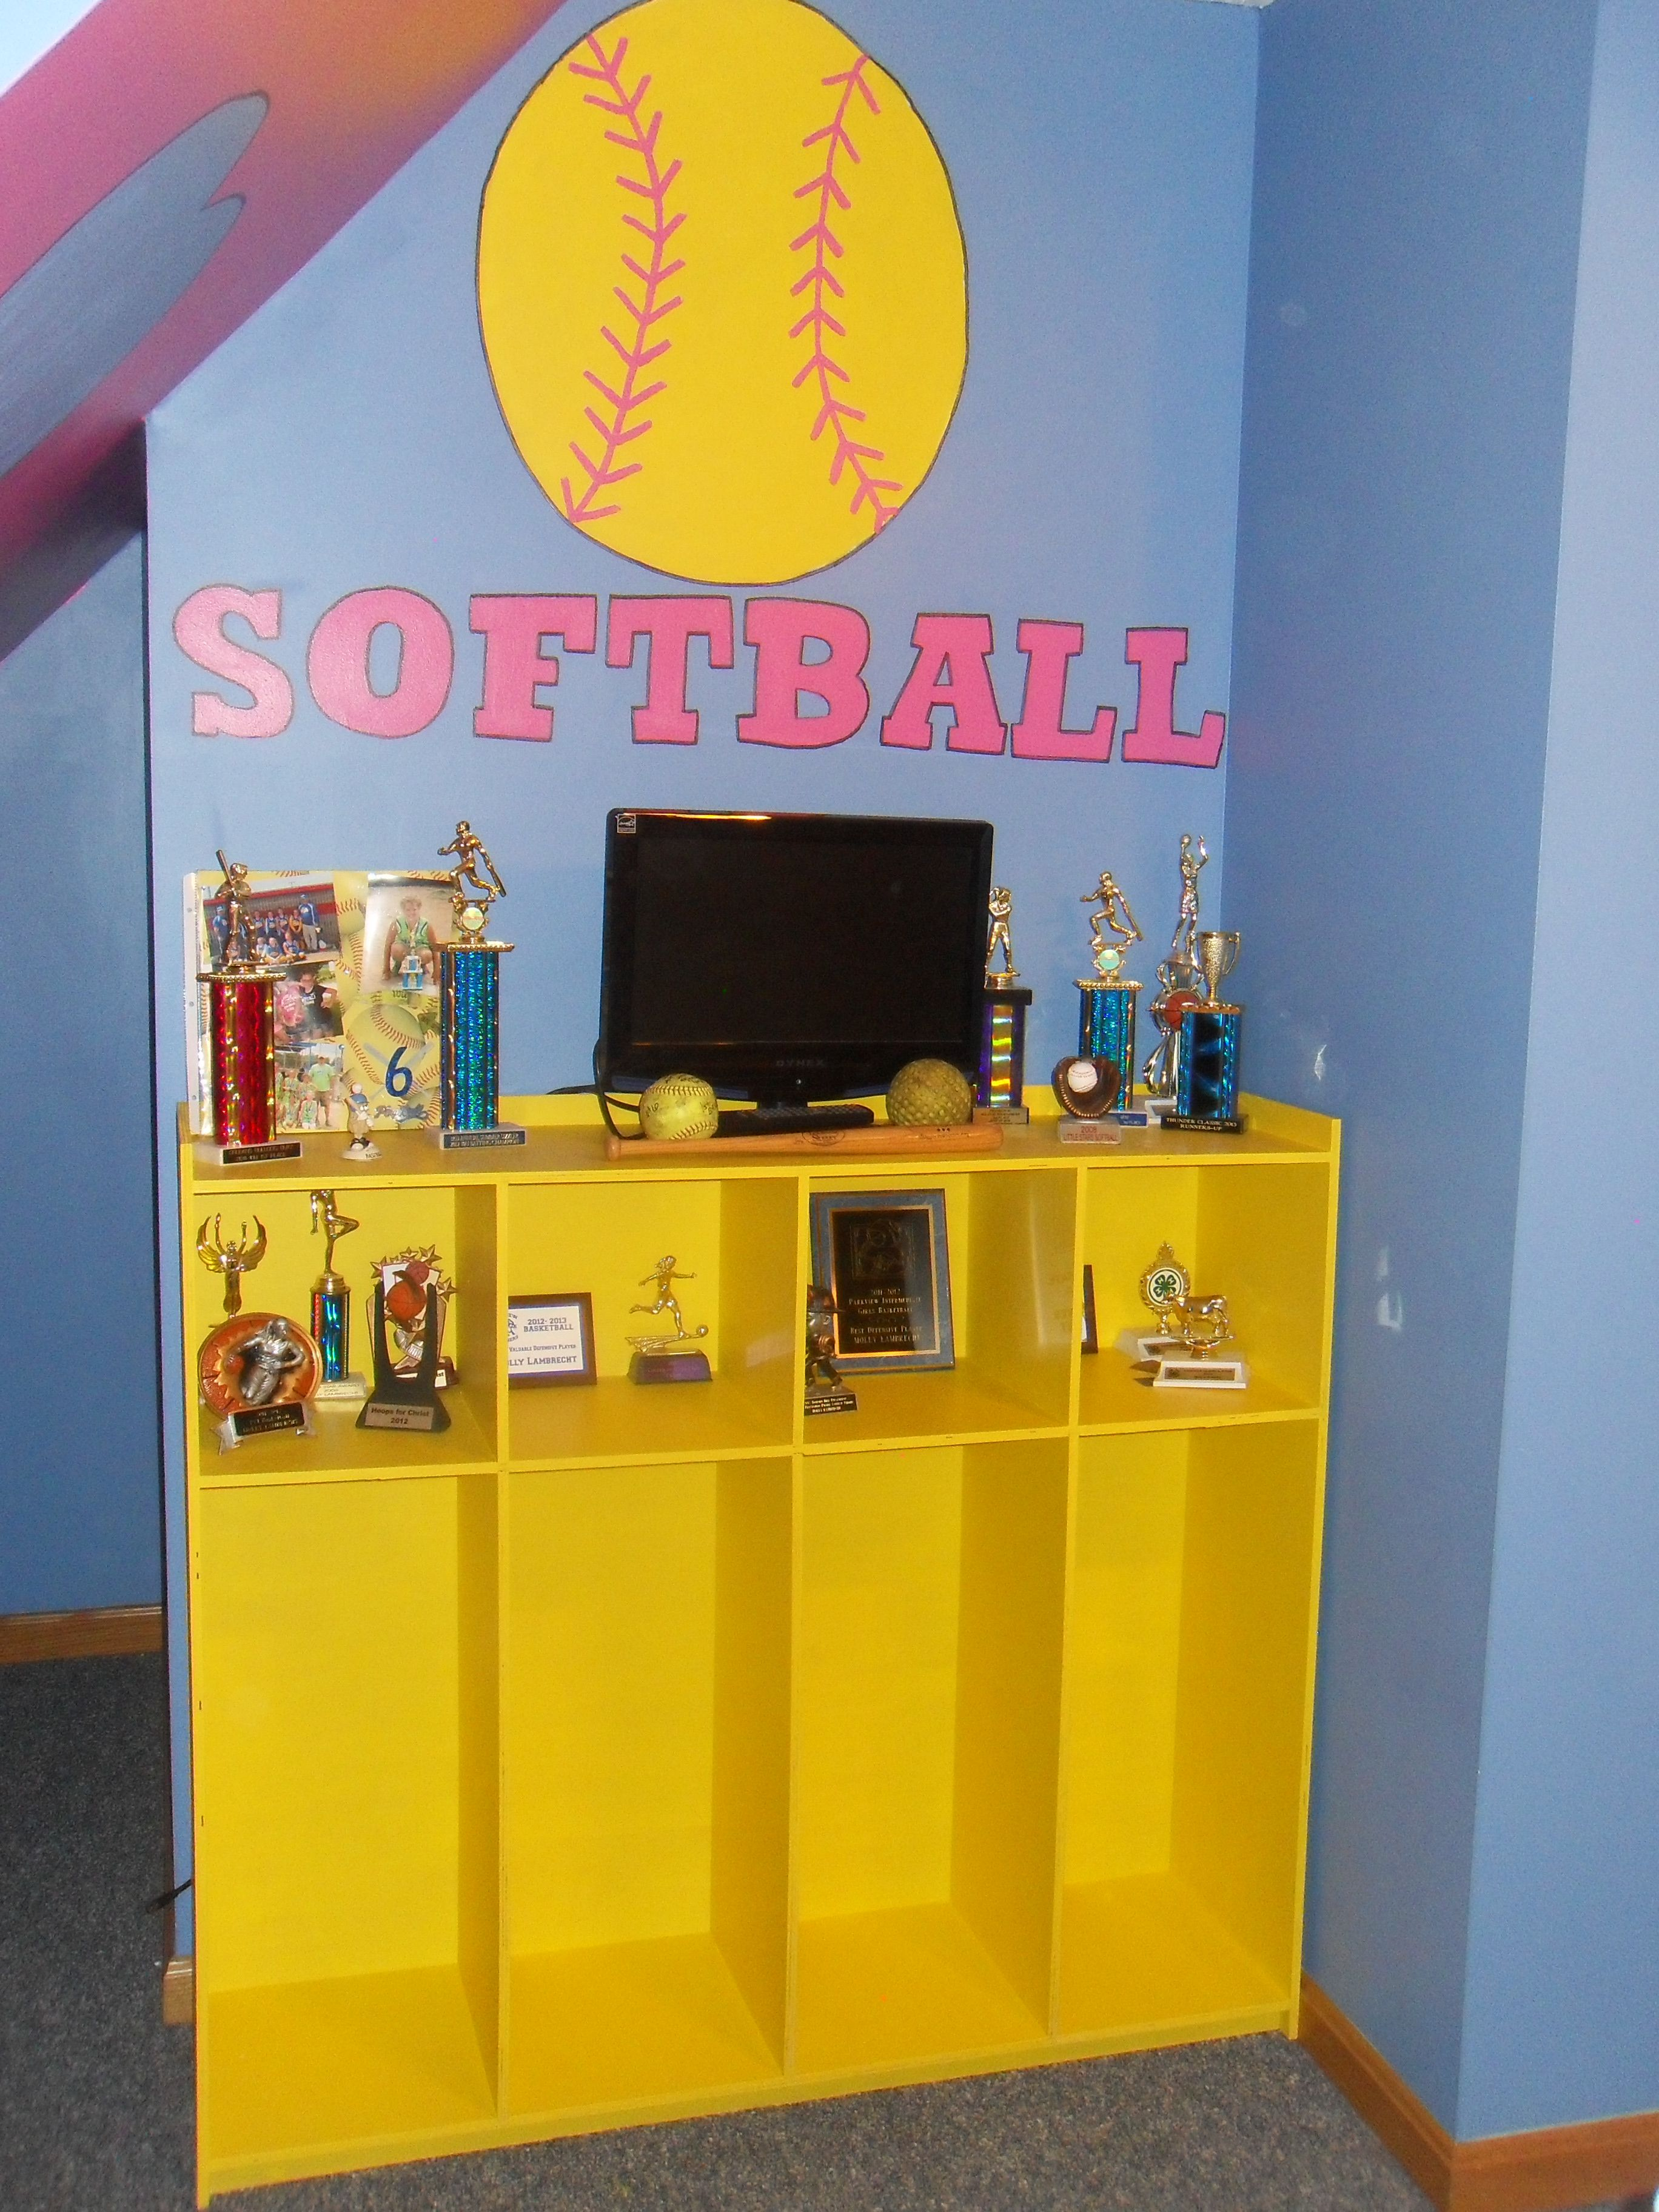 Pin By The Sunflower Market At Lambr On Izzy Softball Bedroom Softball Room Softball Softball decorations for bedroom